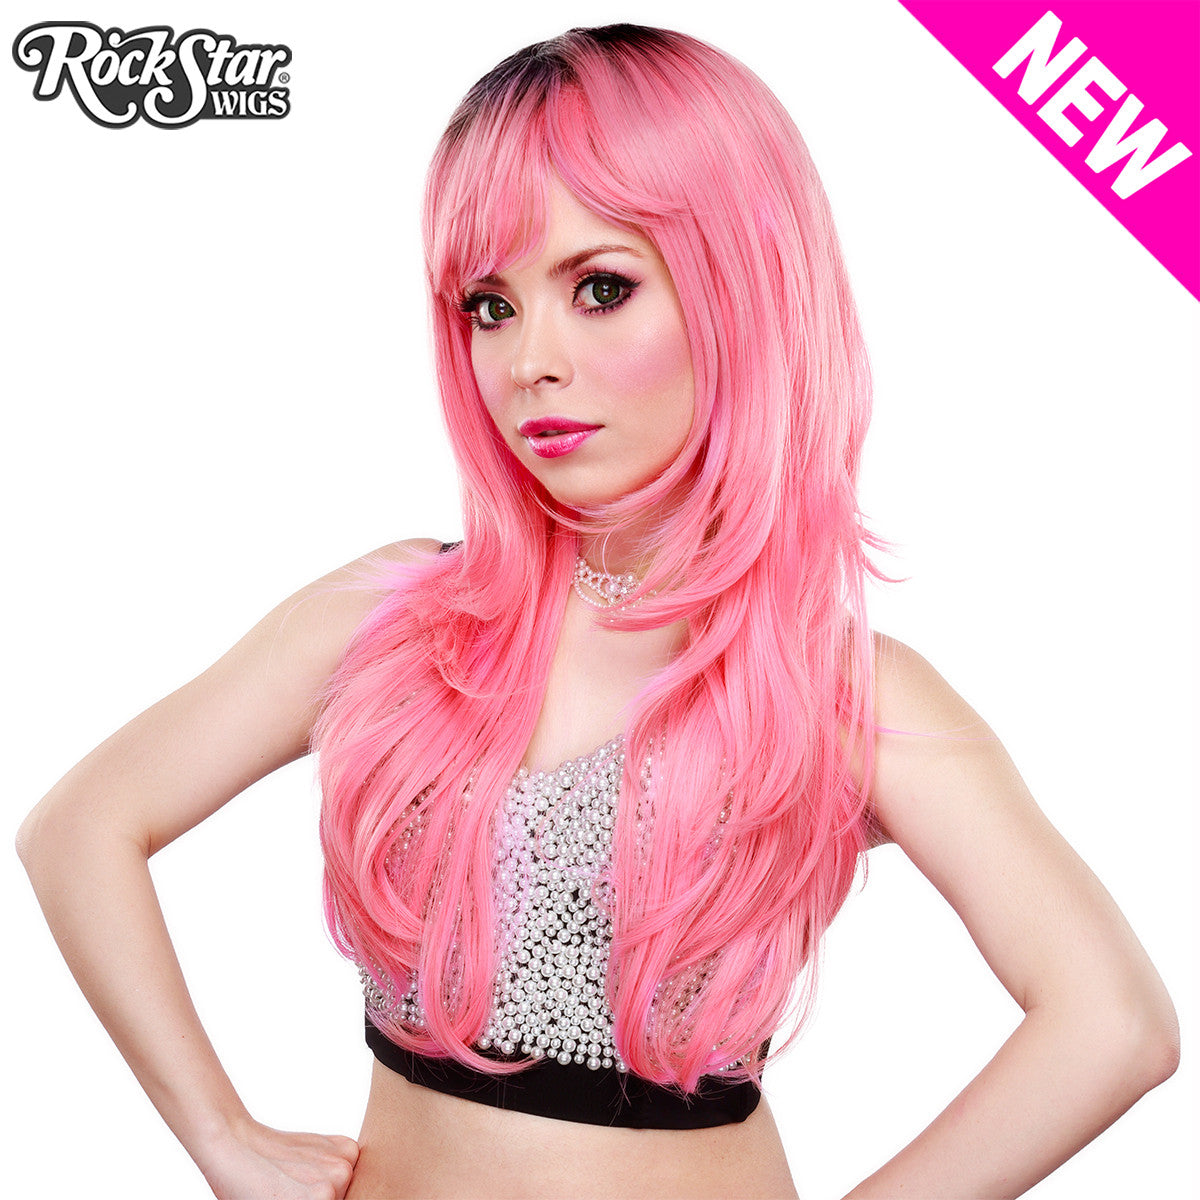 RockStar Wigs® <br> Uptown Girl™ Collection - Bubble Gum Pink -00134